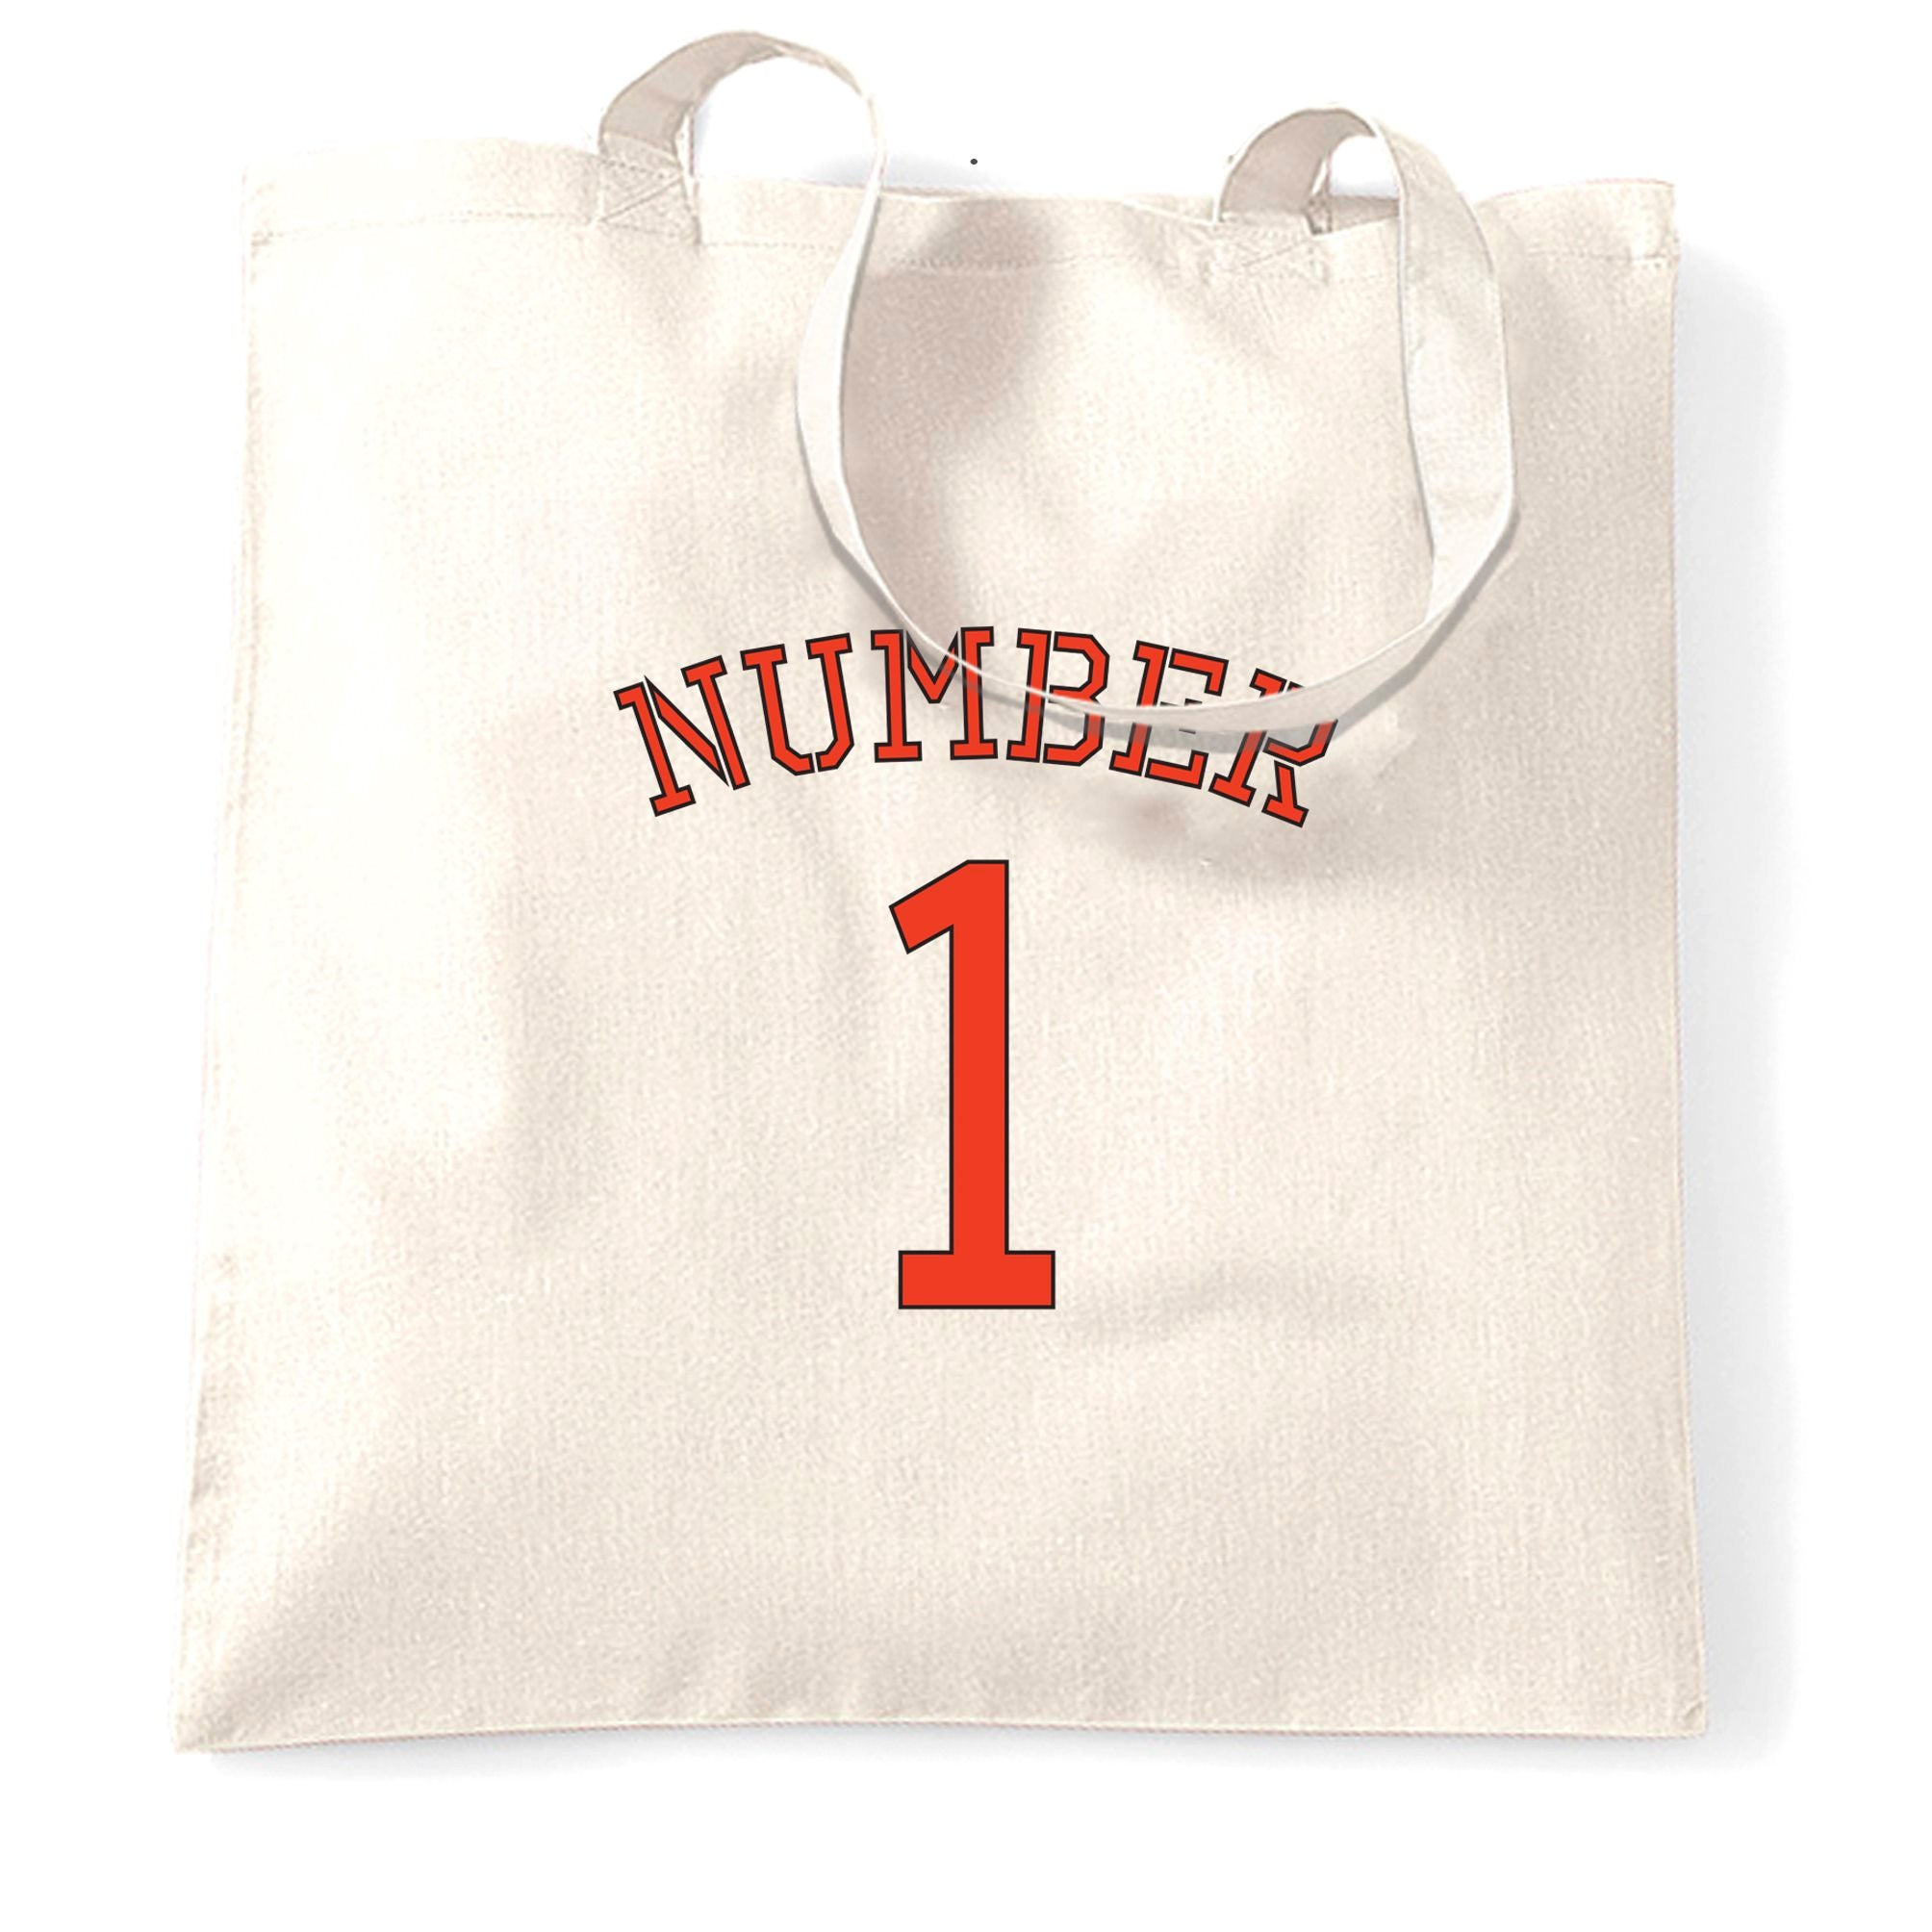 The Best Number One Champion Winner Tote Bag